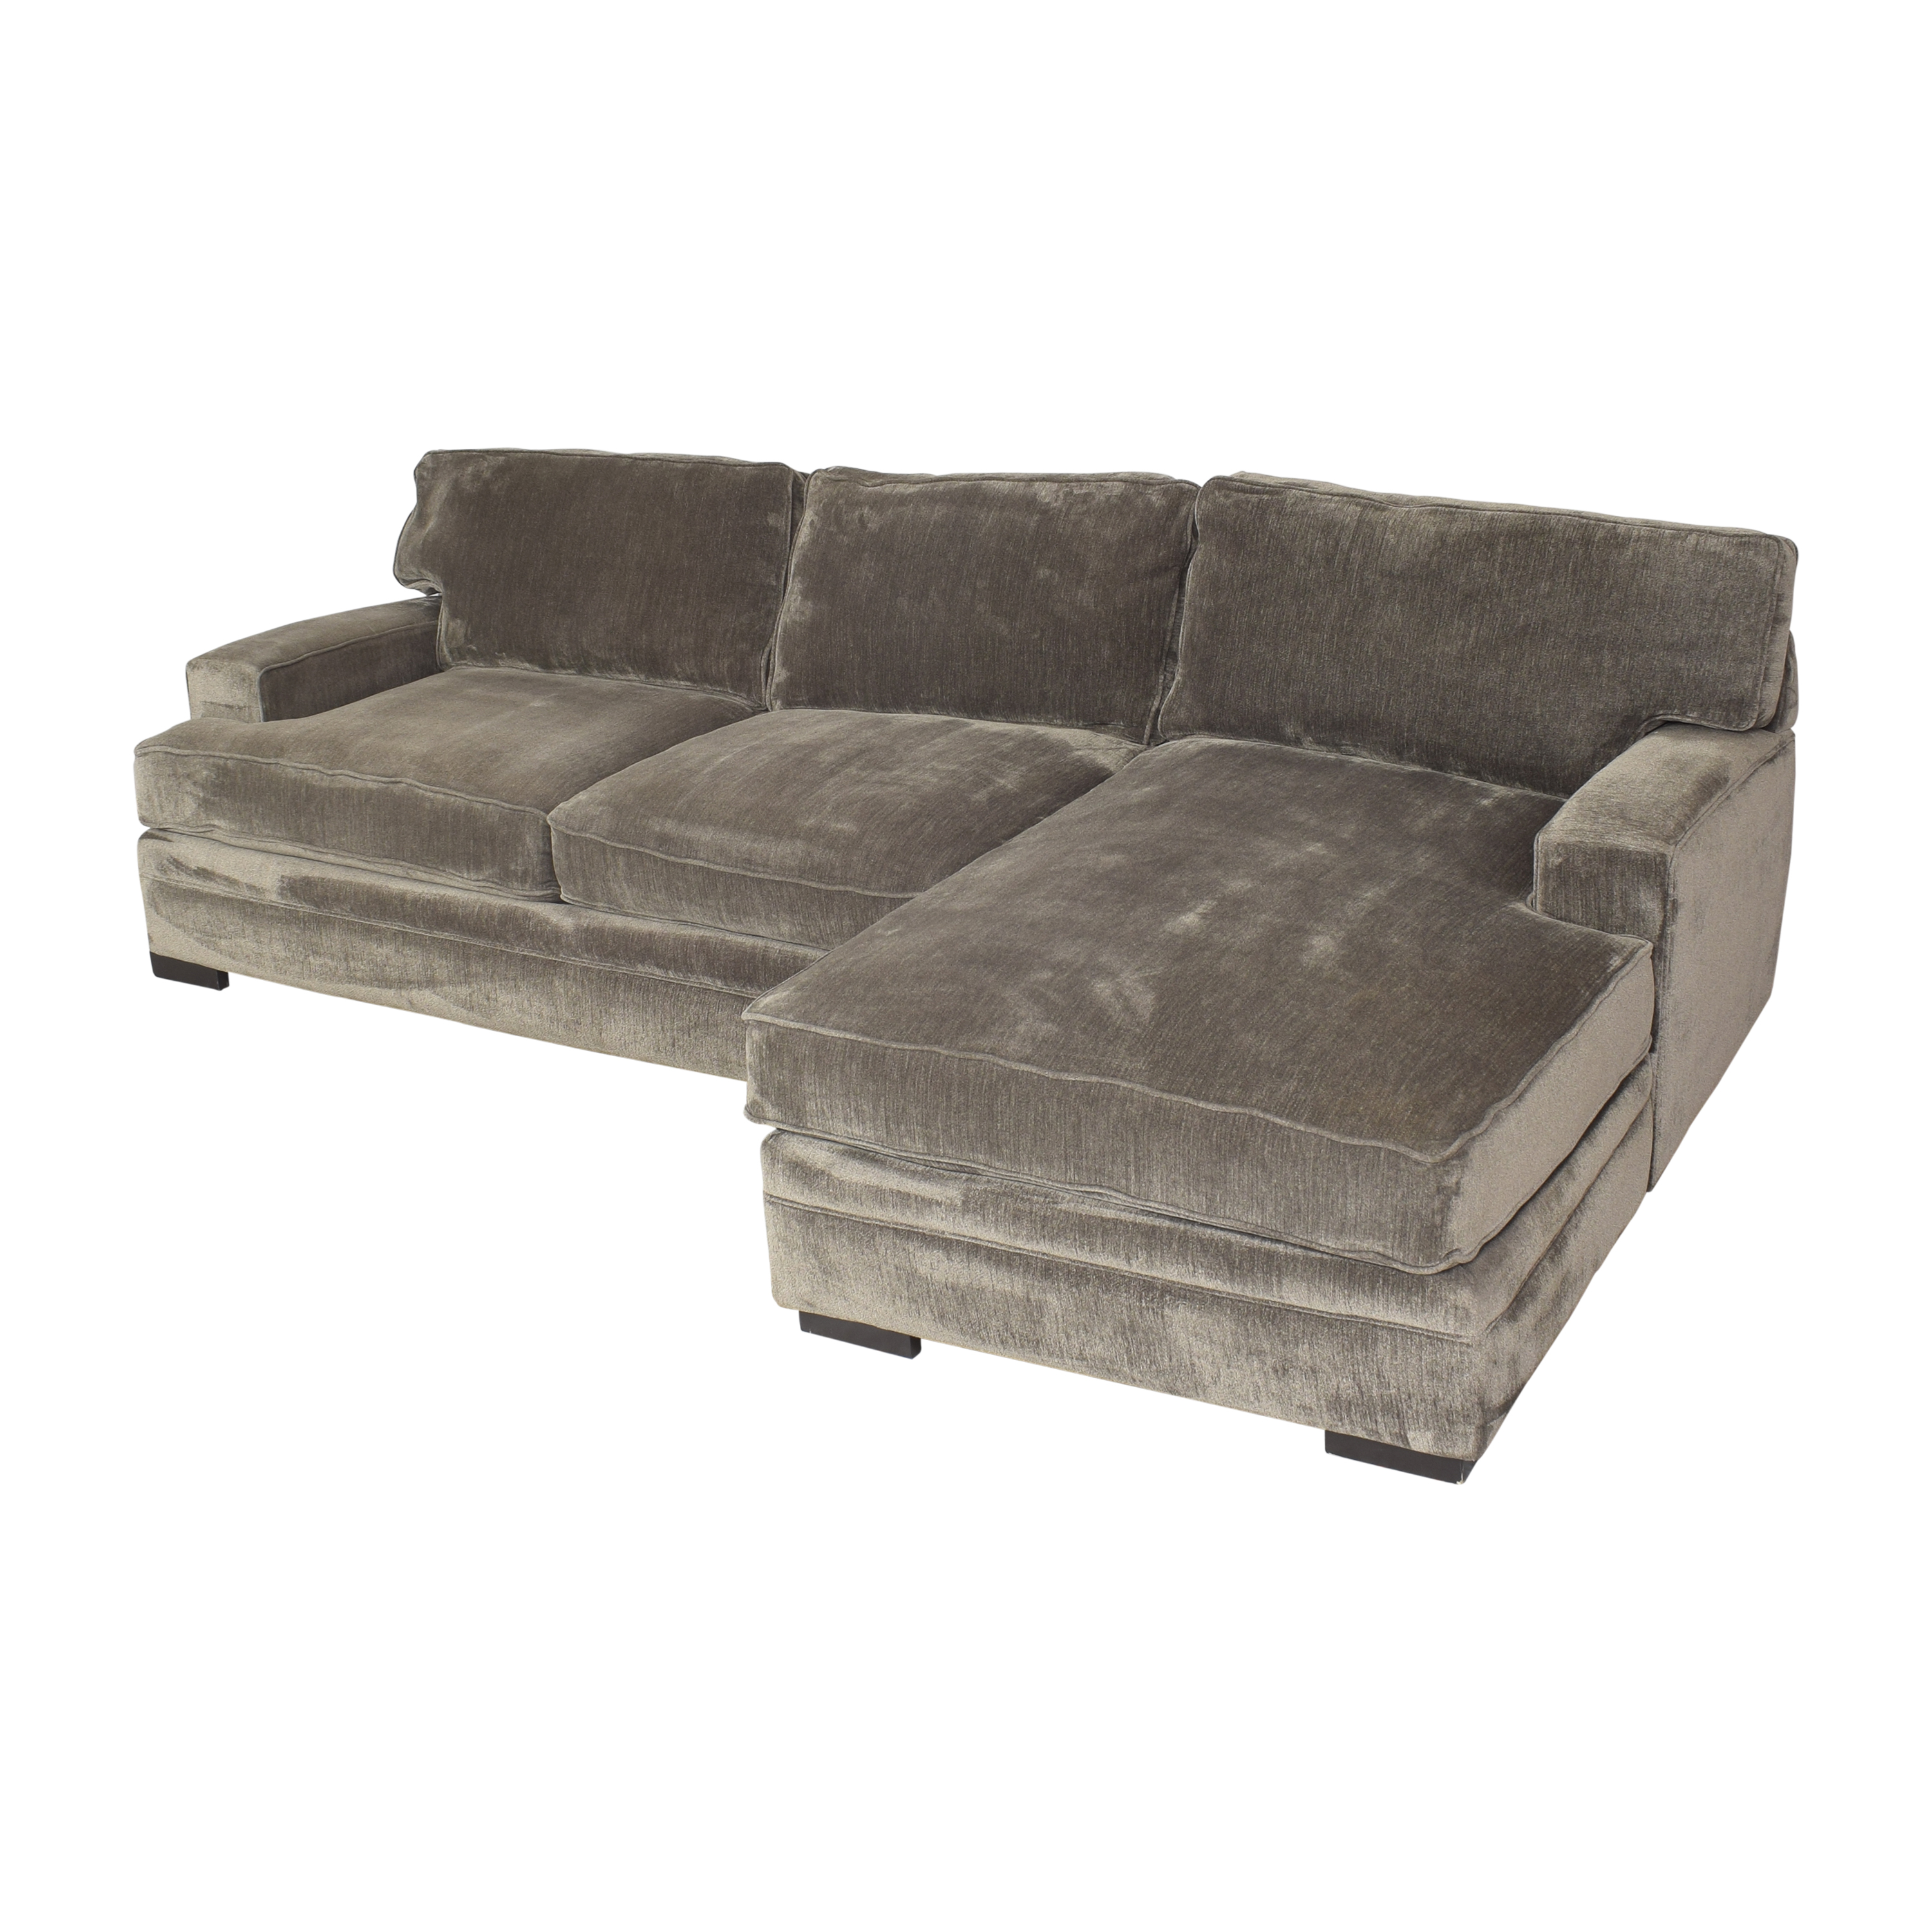 Macy's Macy's Rhyder Two Piece Sectional Sofa coupon